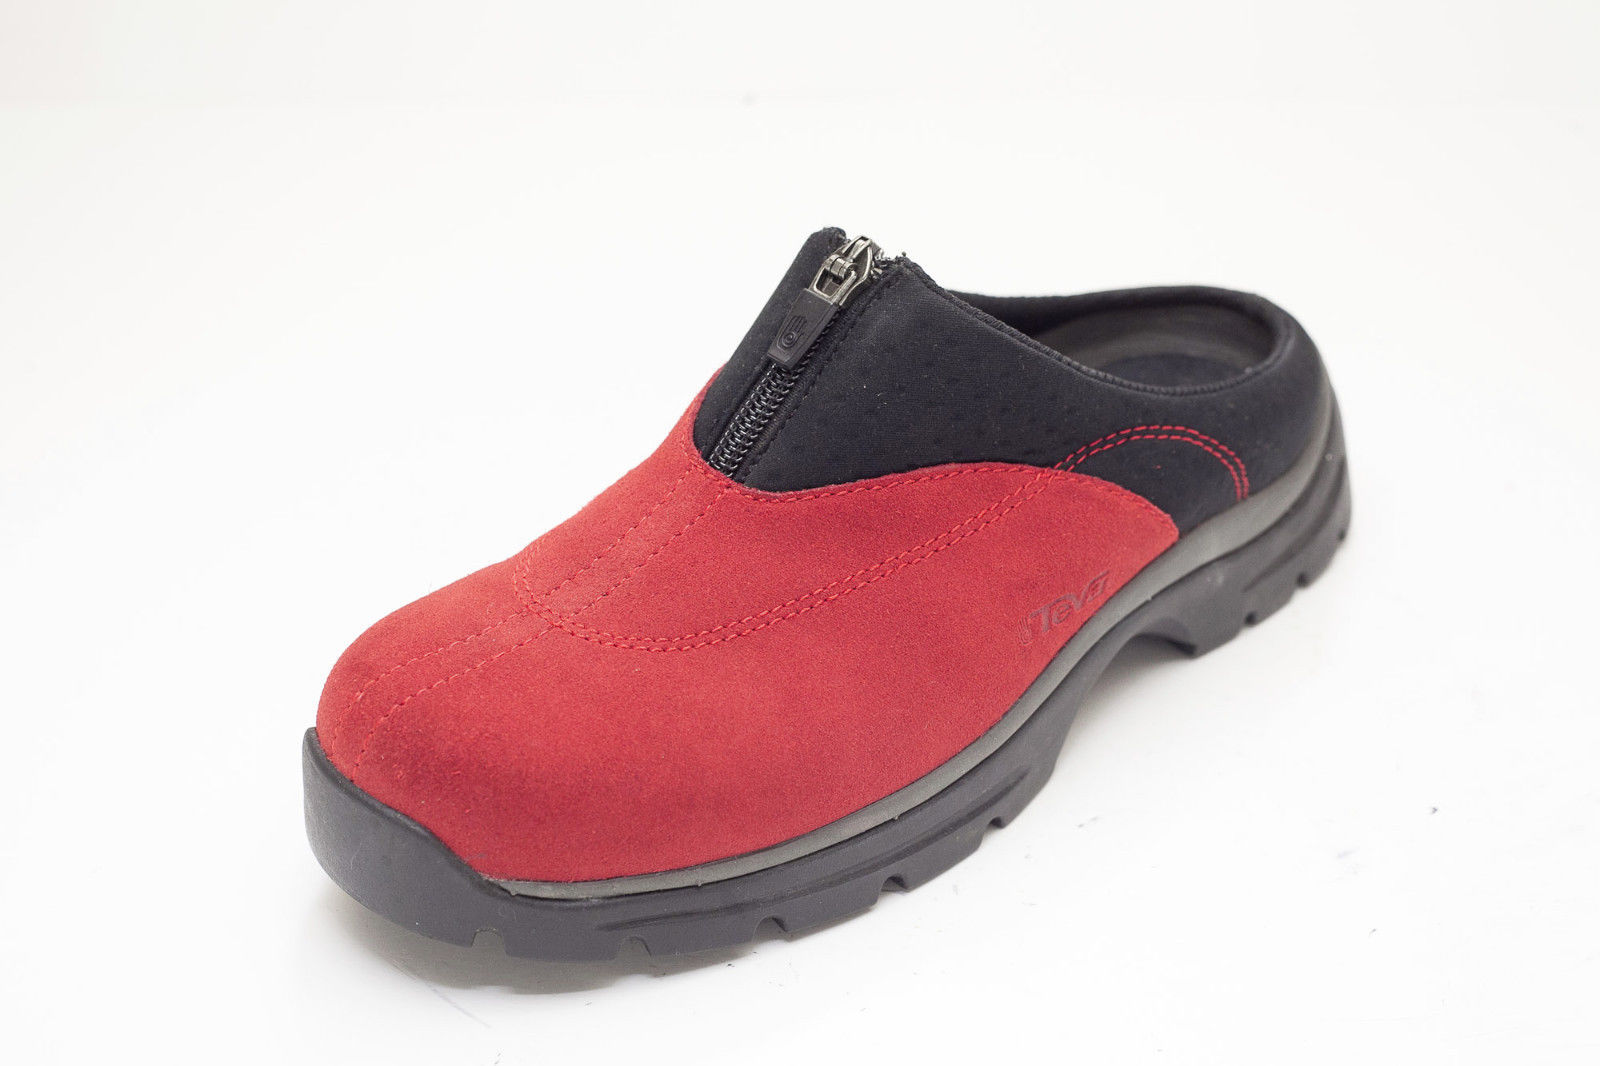 053859c5daea Teva 7.5 Red Clogs Womens Shoes and 50 similar items